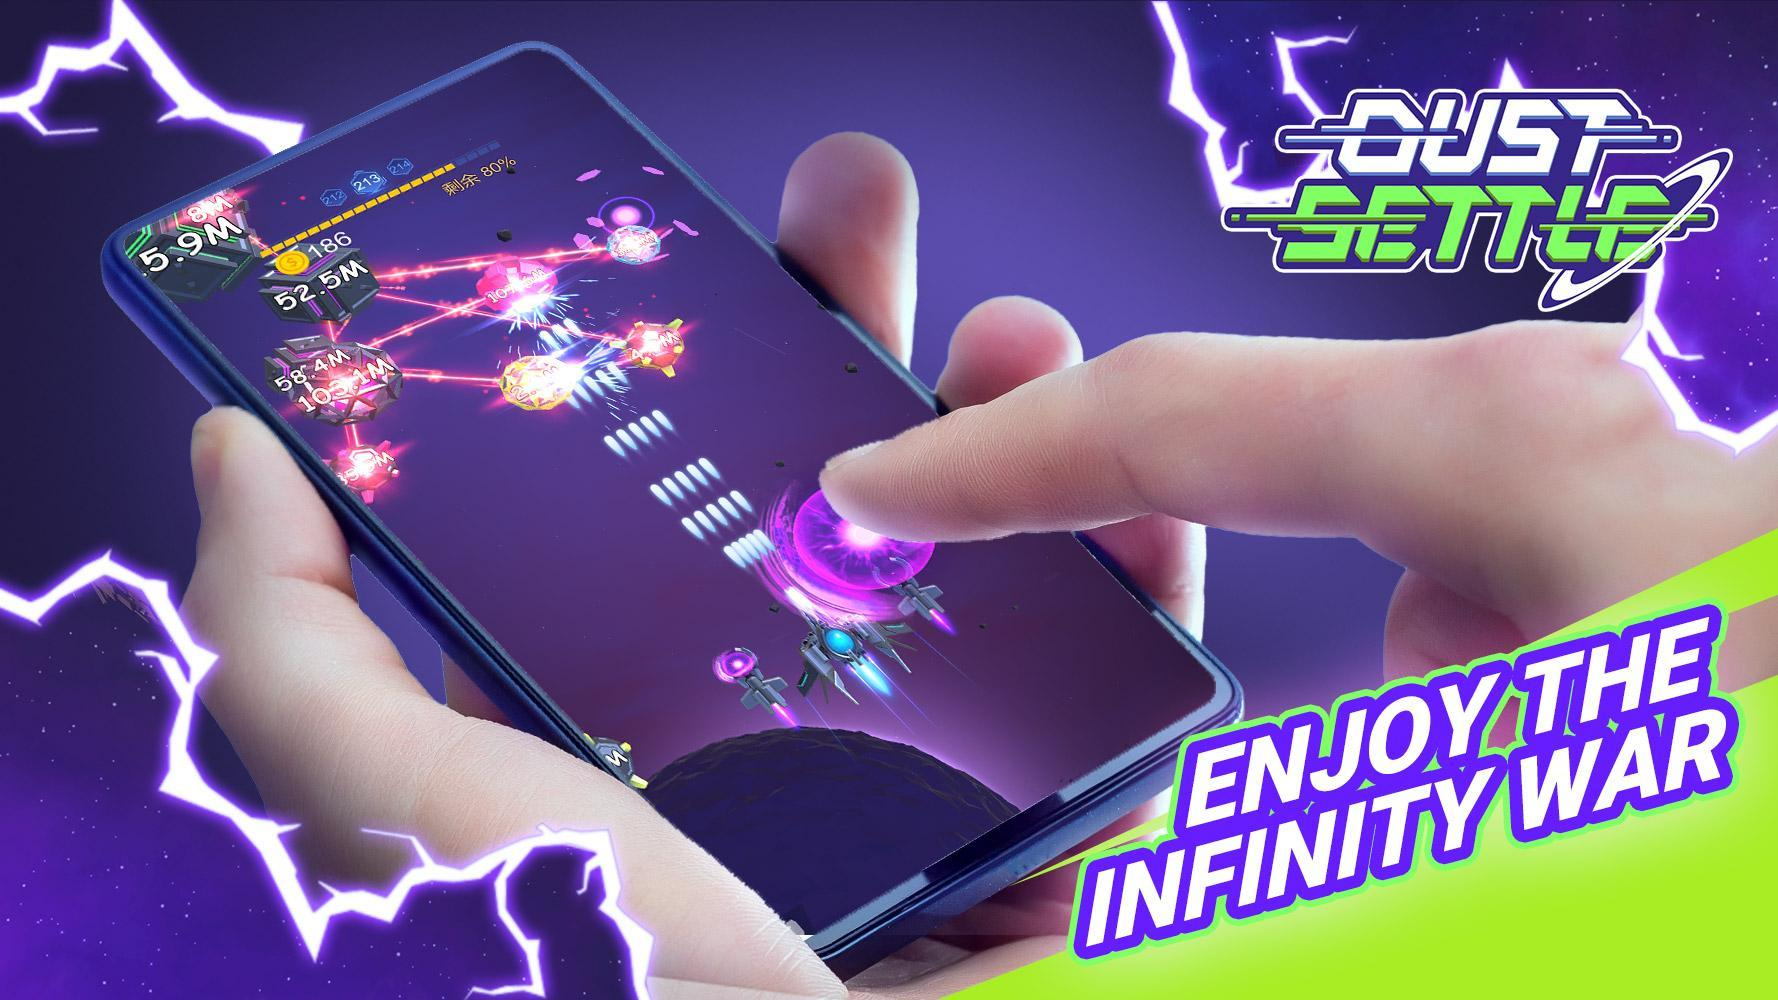 Dust Settle 3D-Infinity Space Shooting Arcade Game 1.49 Screenshot 1